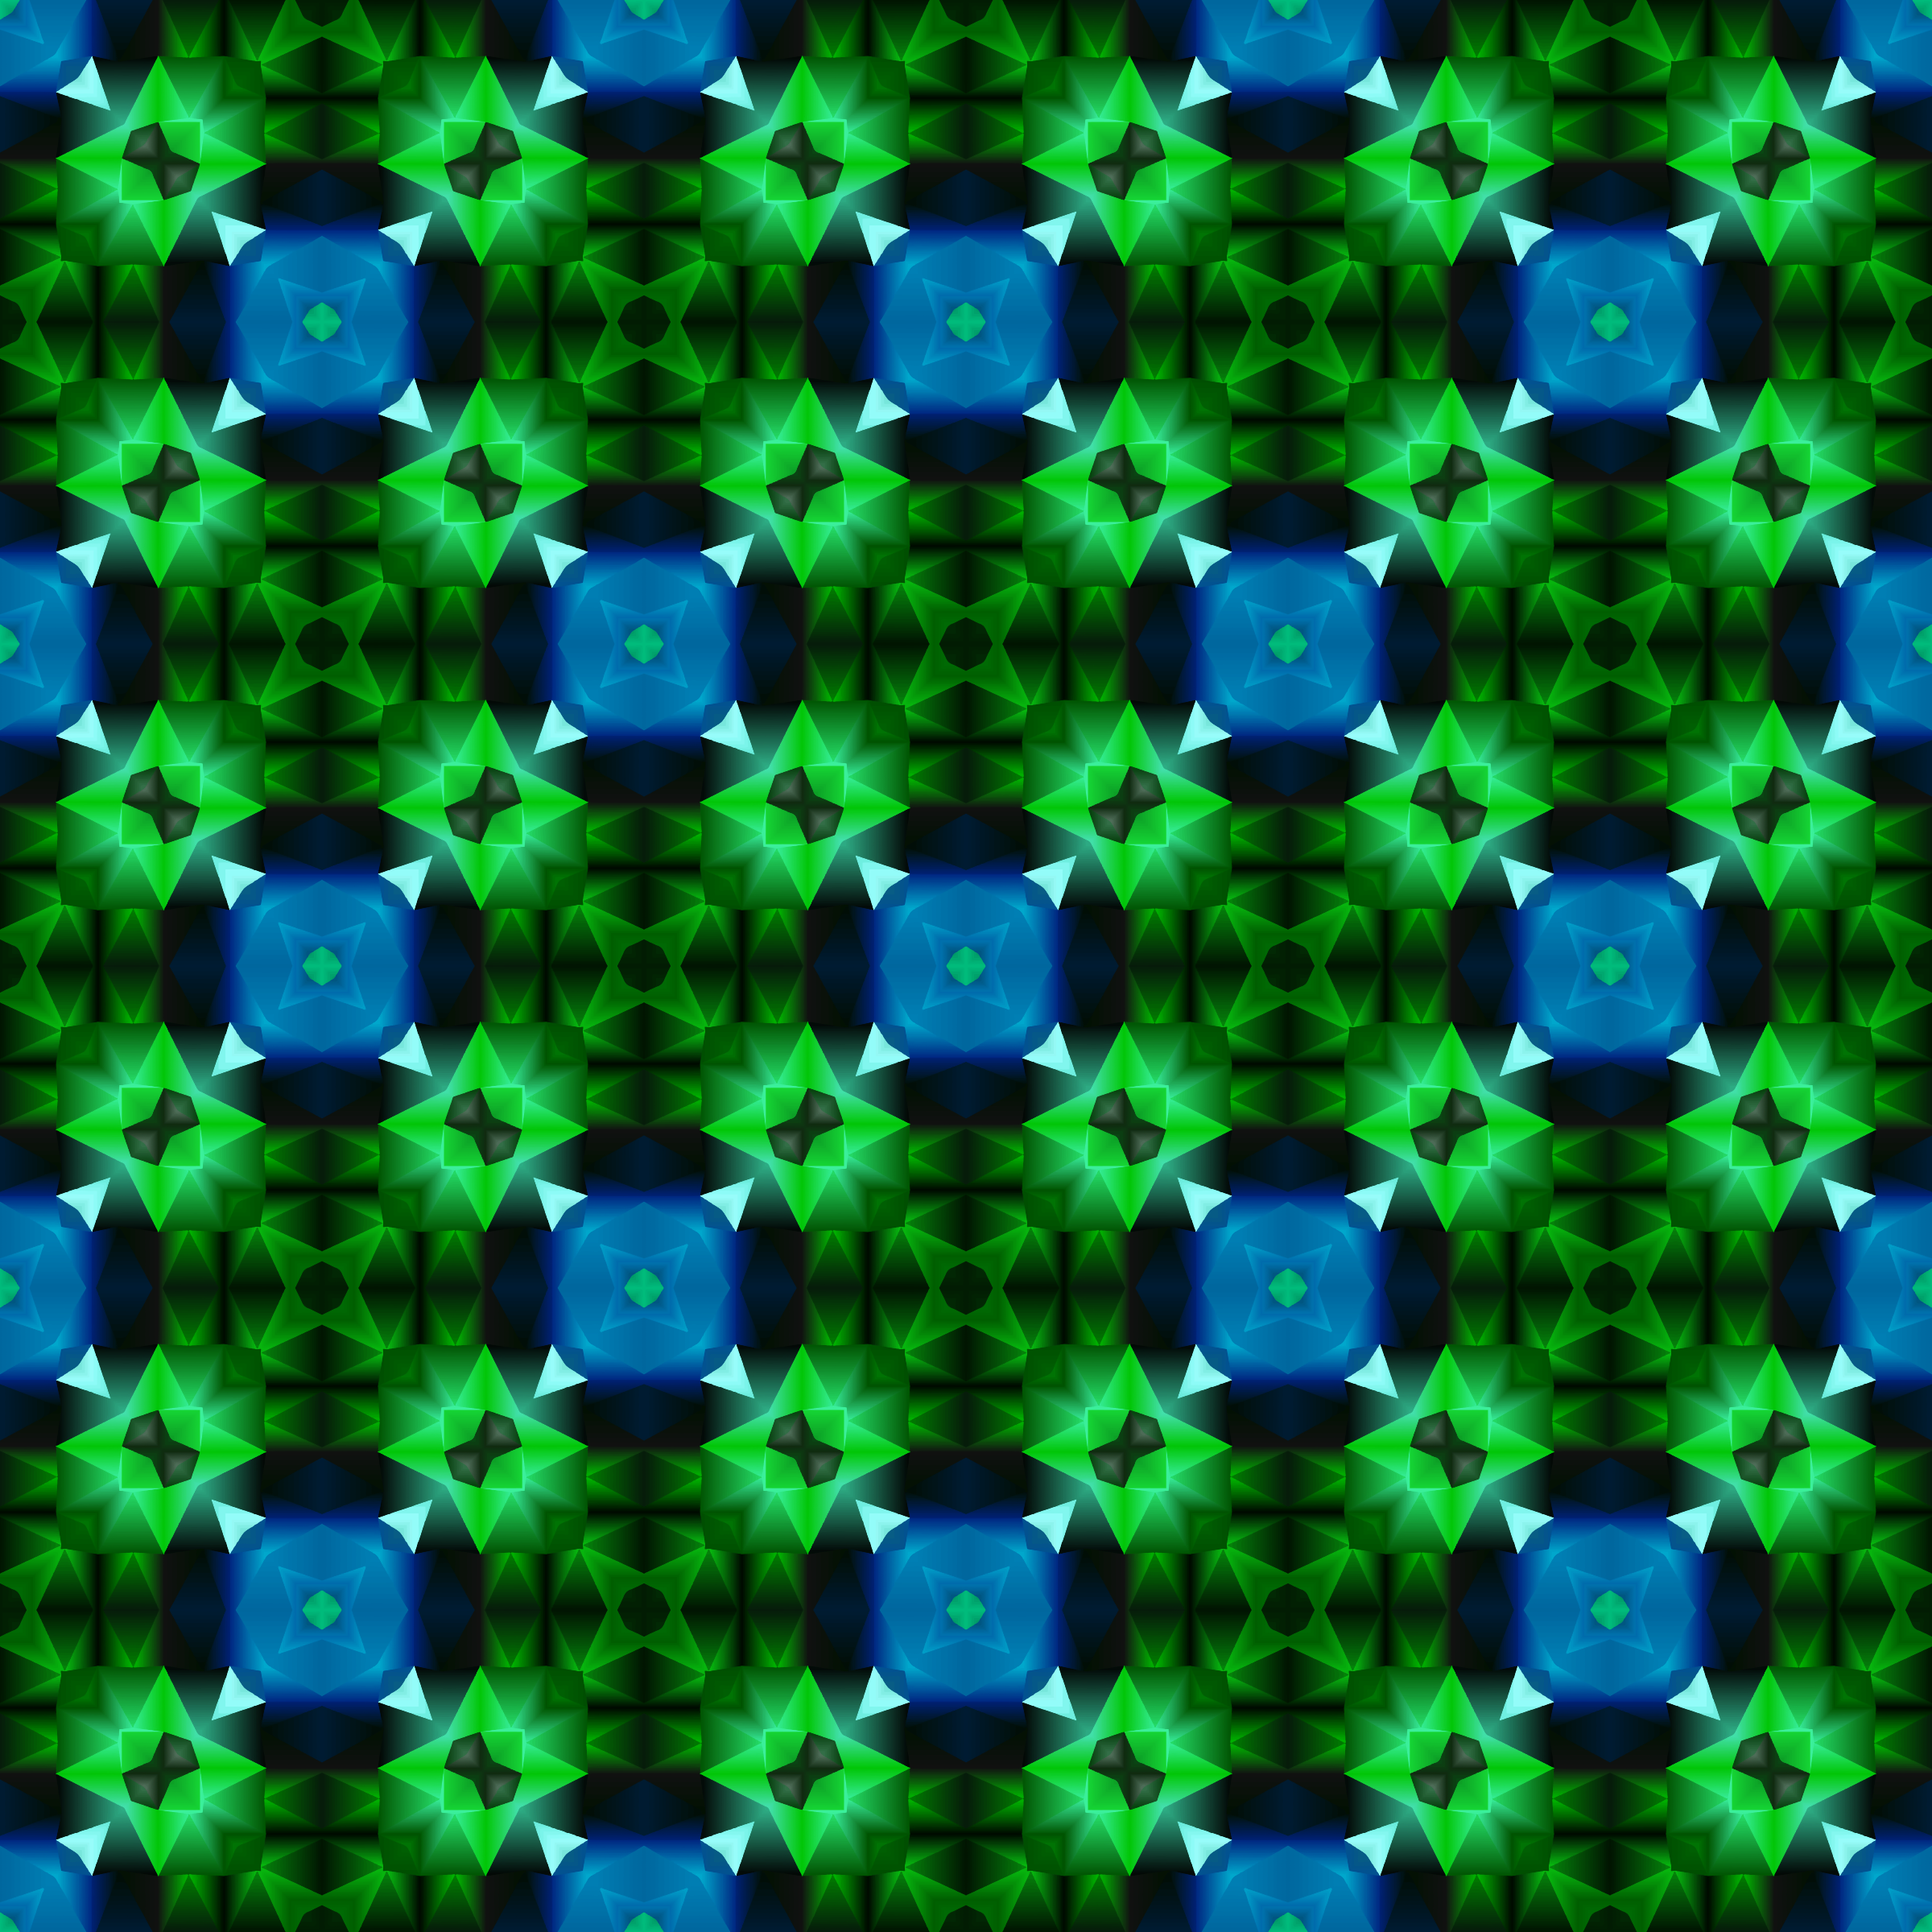 Background pattern 140 (colour 4) by Firkin